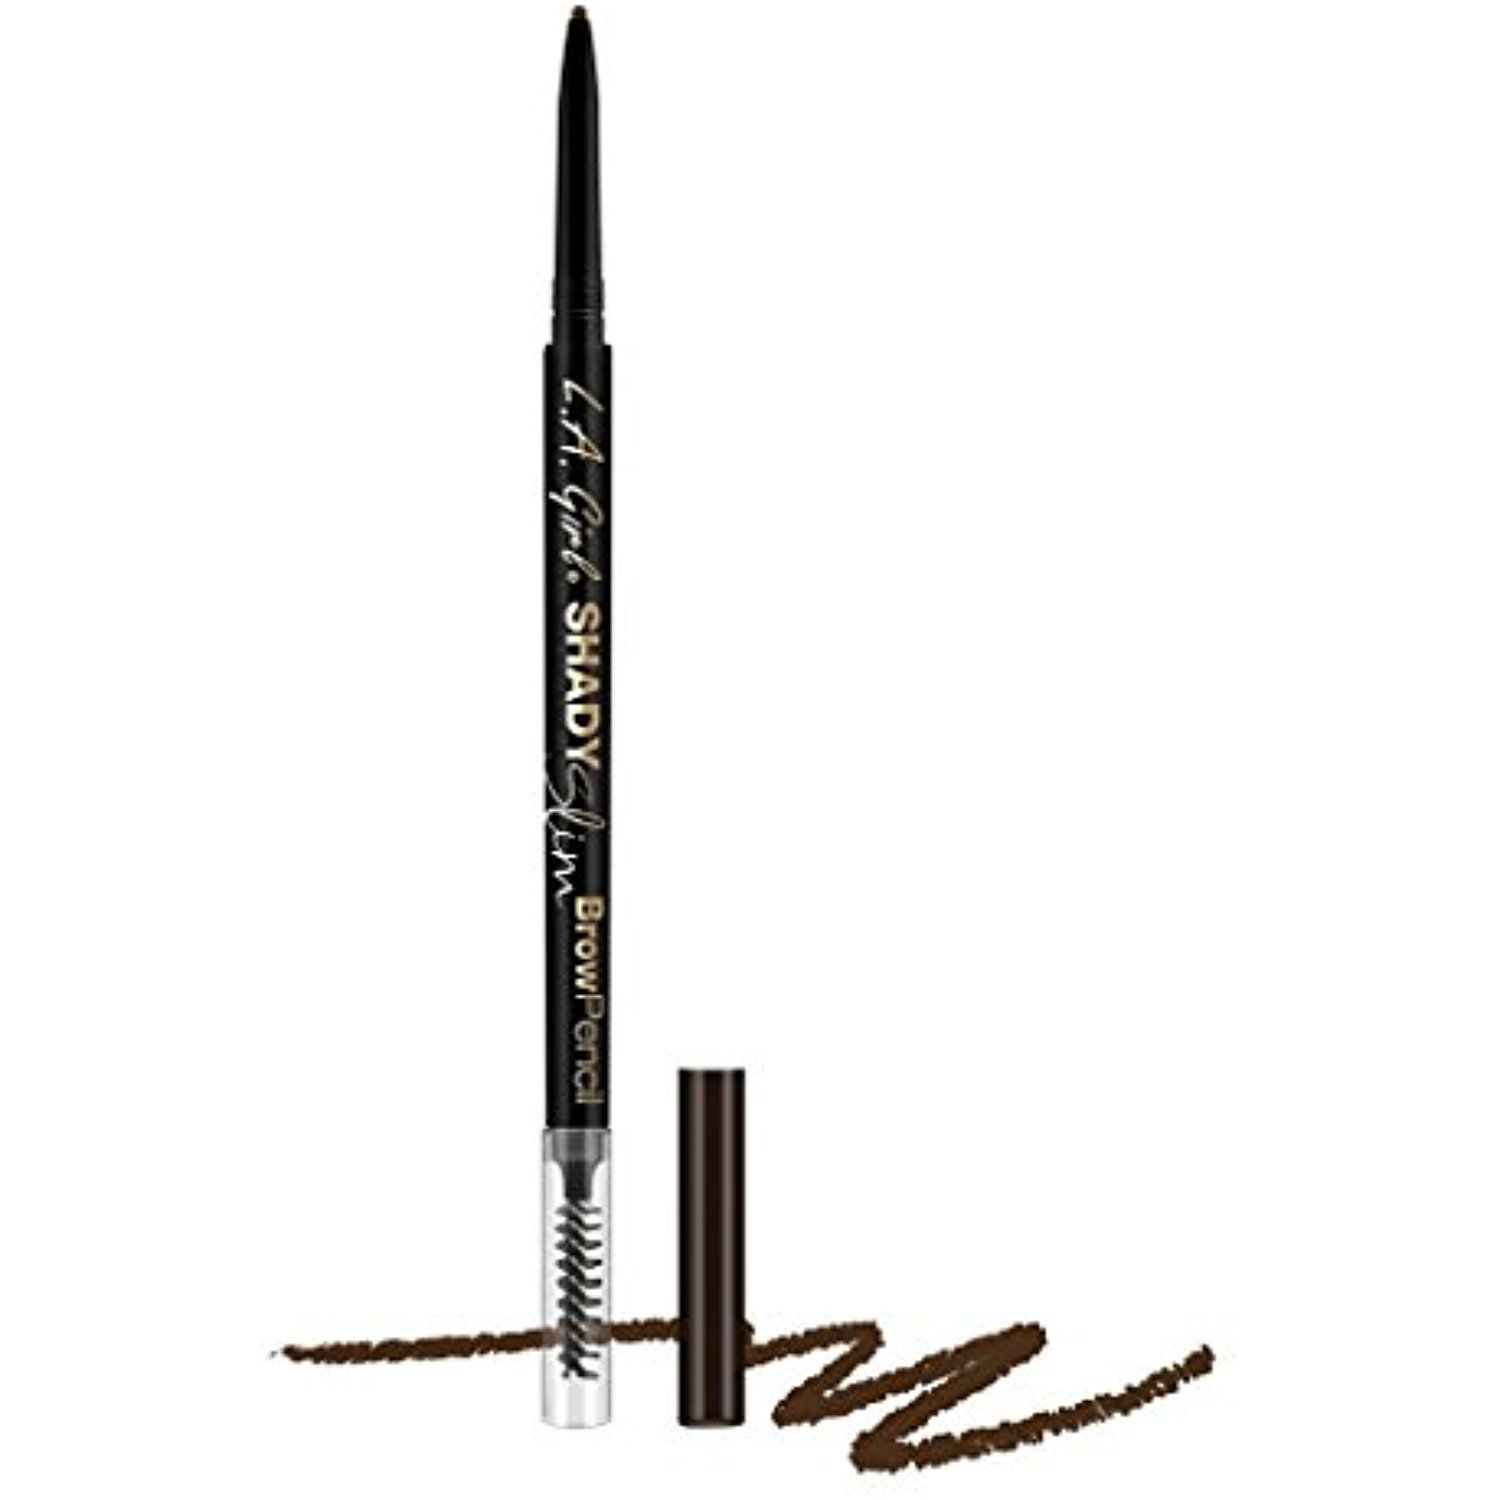 LAGirl Shady Slim Brow Pencil  Pcs  Espresso  Learn more by